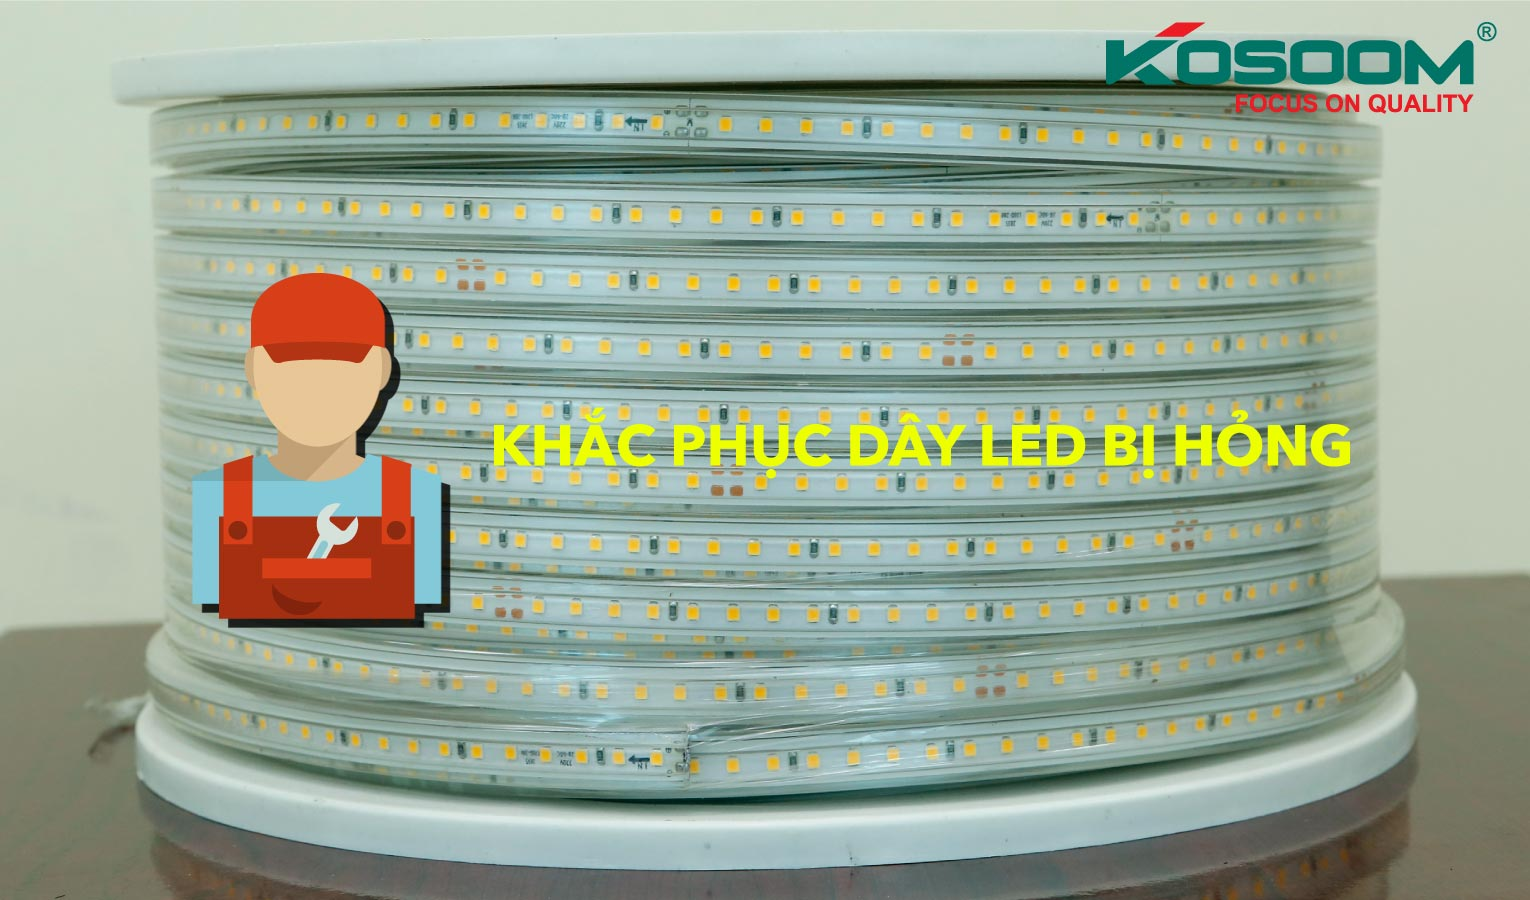 tim-hieu-day-led-bi-hong-va-cach-sua-chua-1